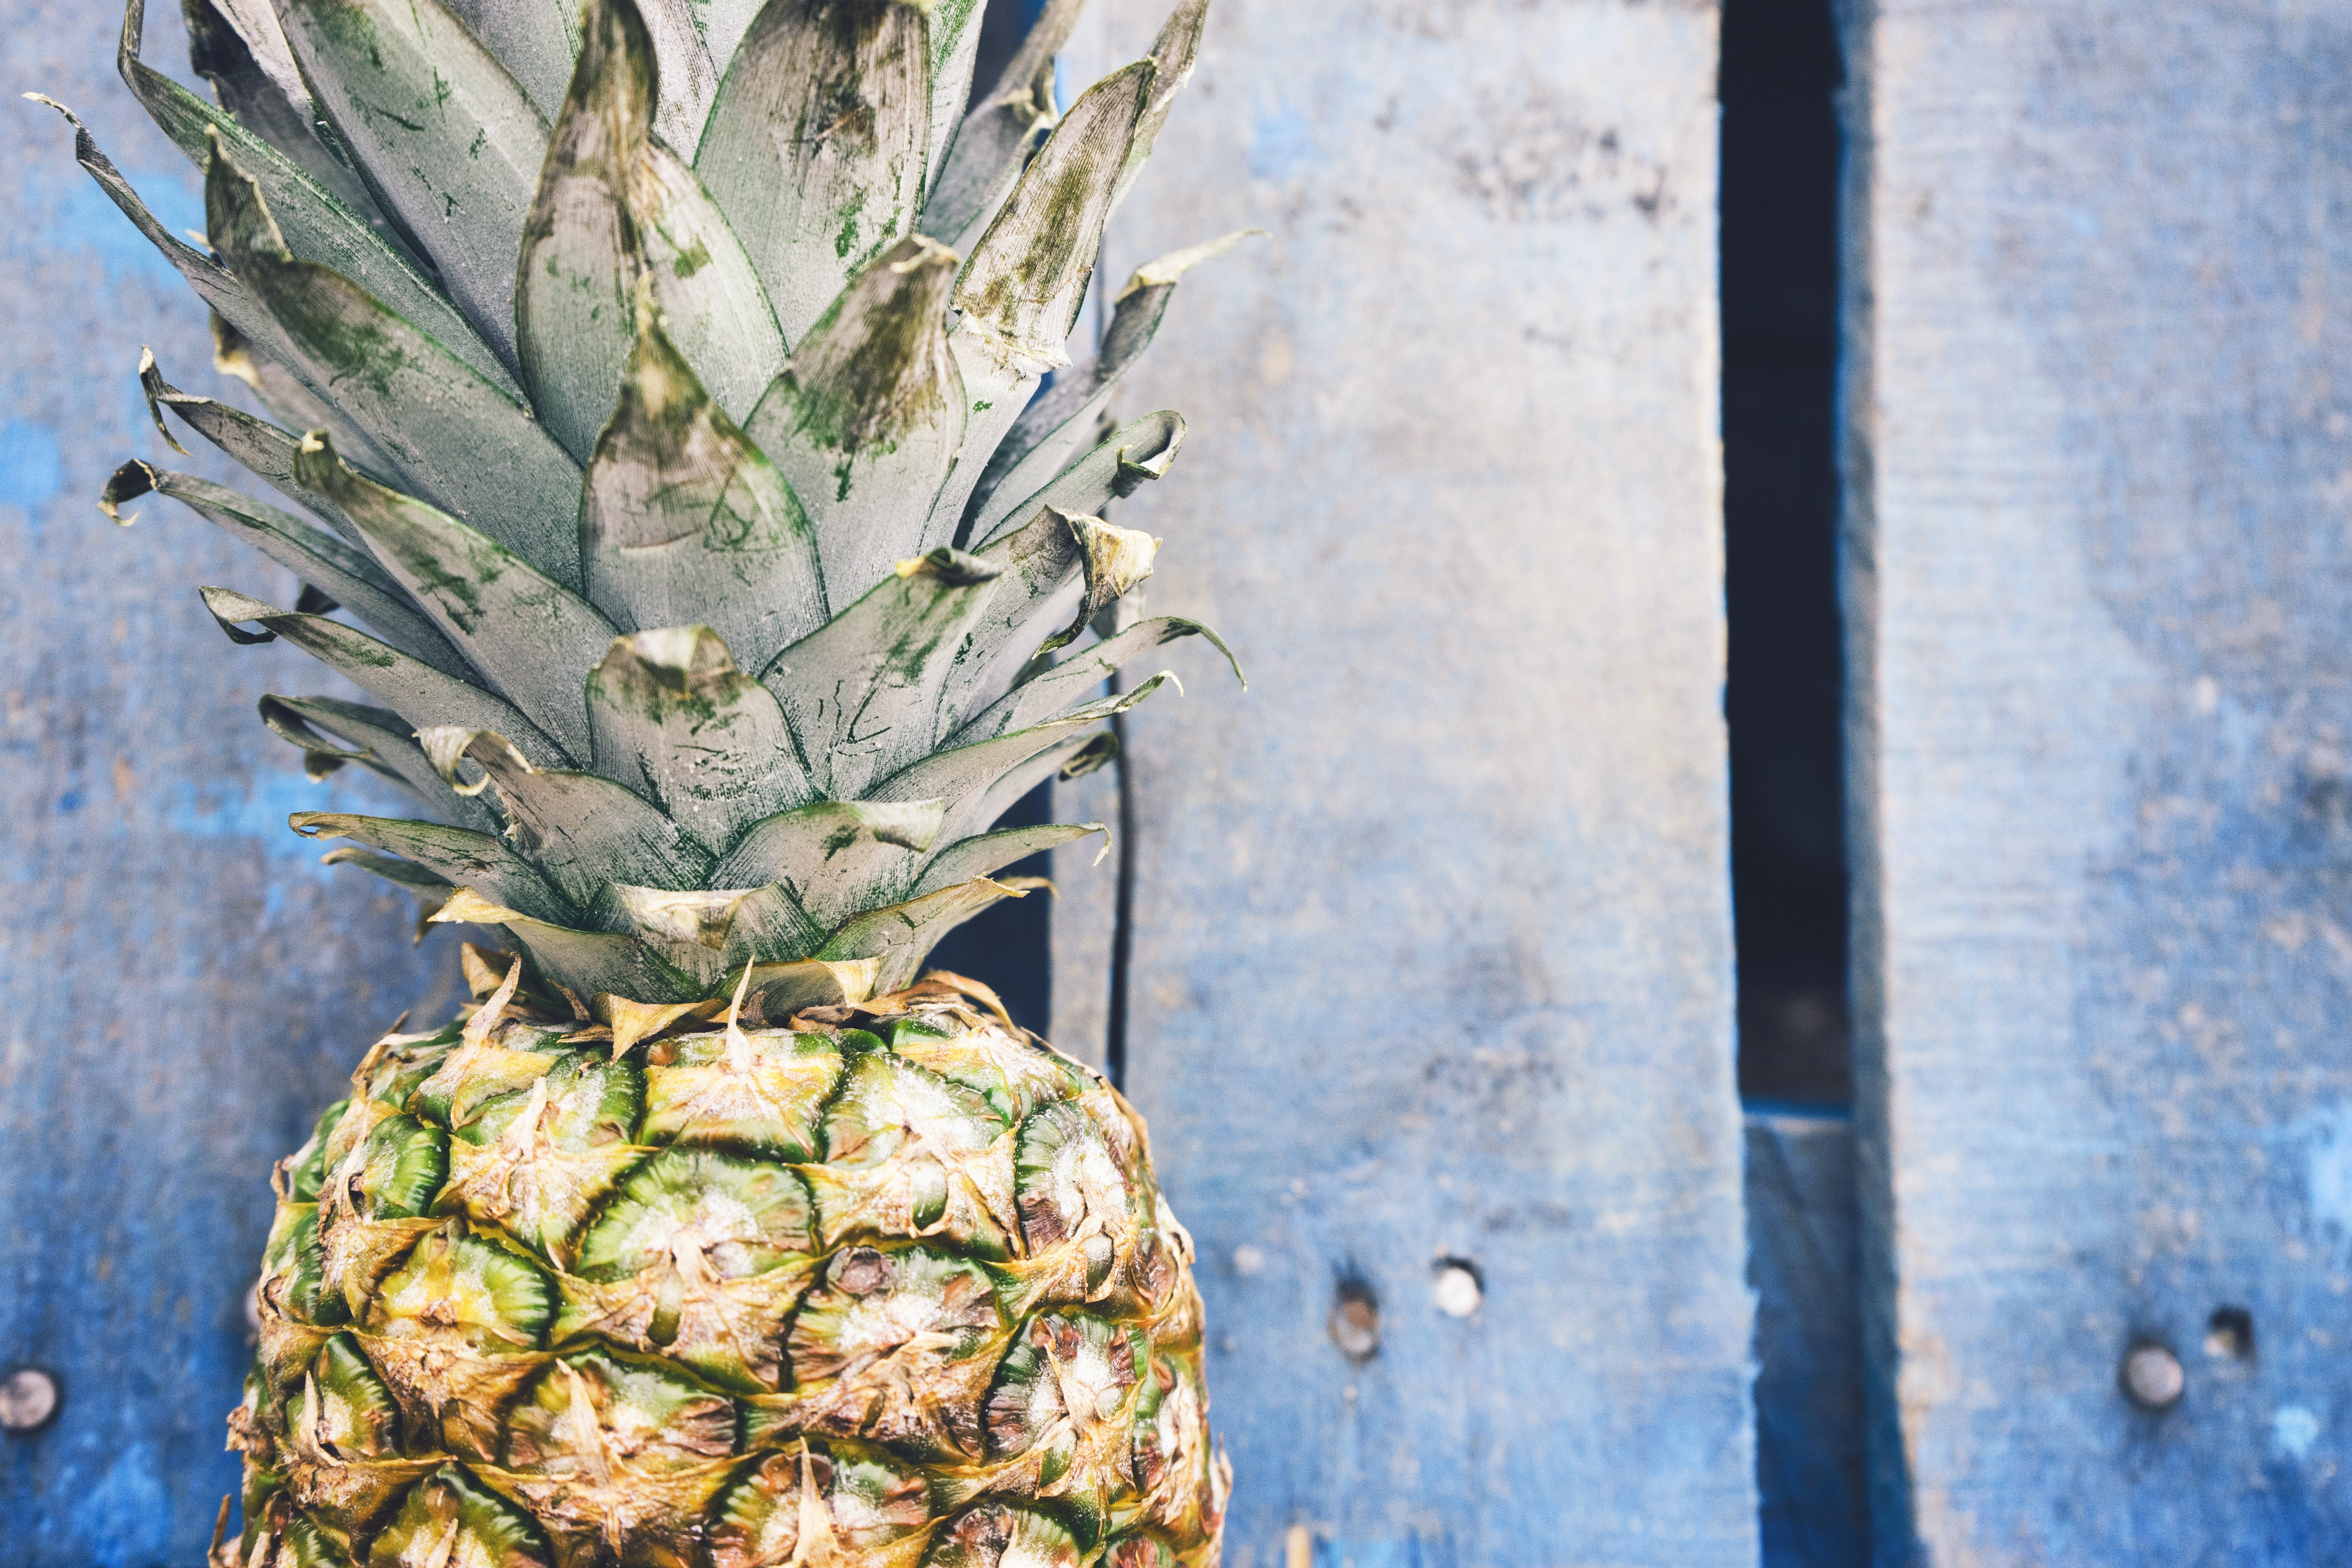 Free Unsplash photo from Pineapple Supply Co.